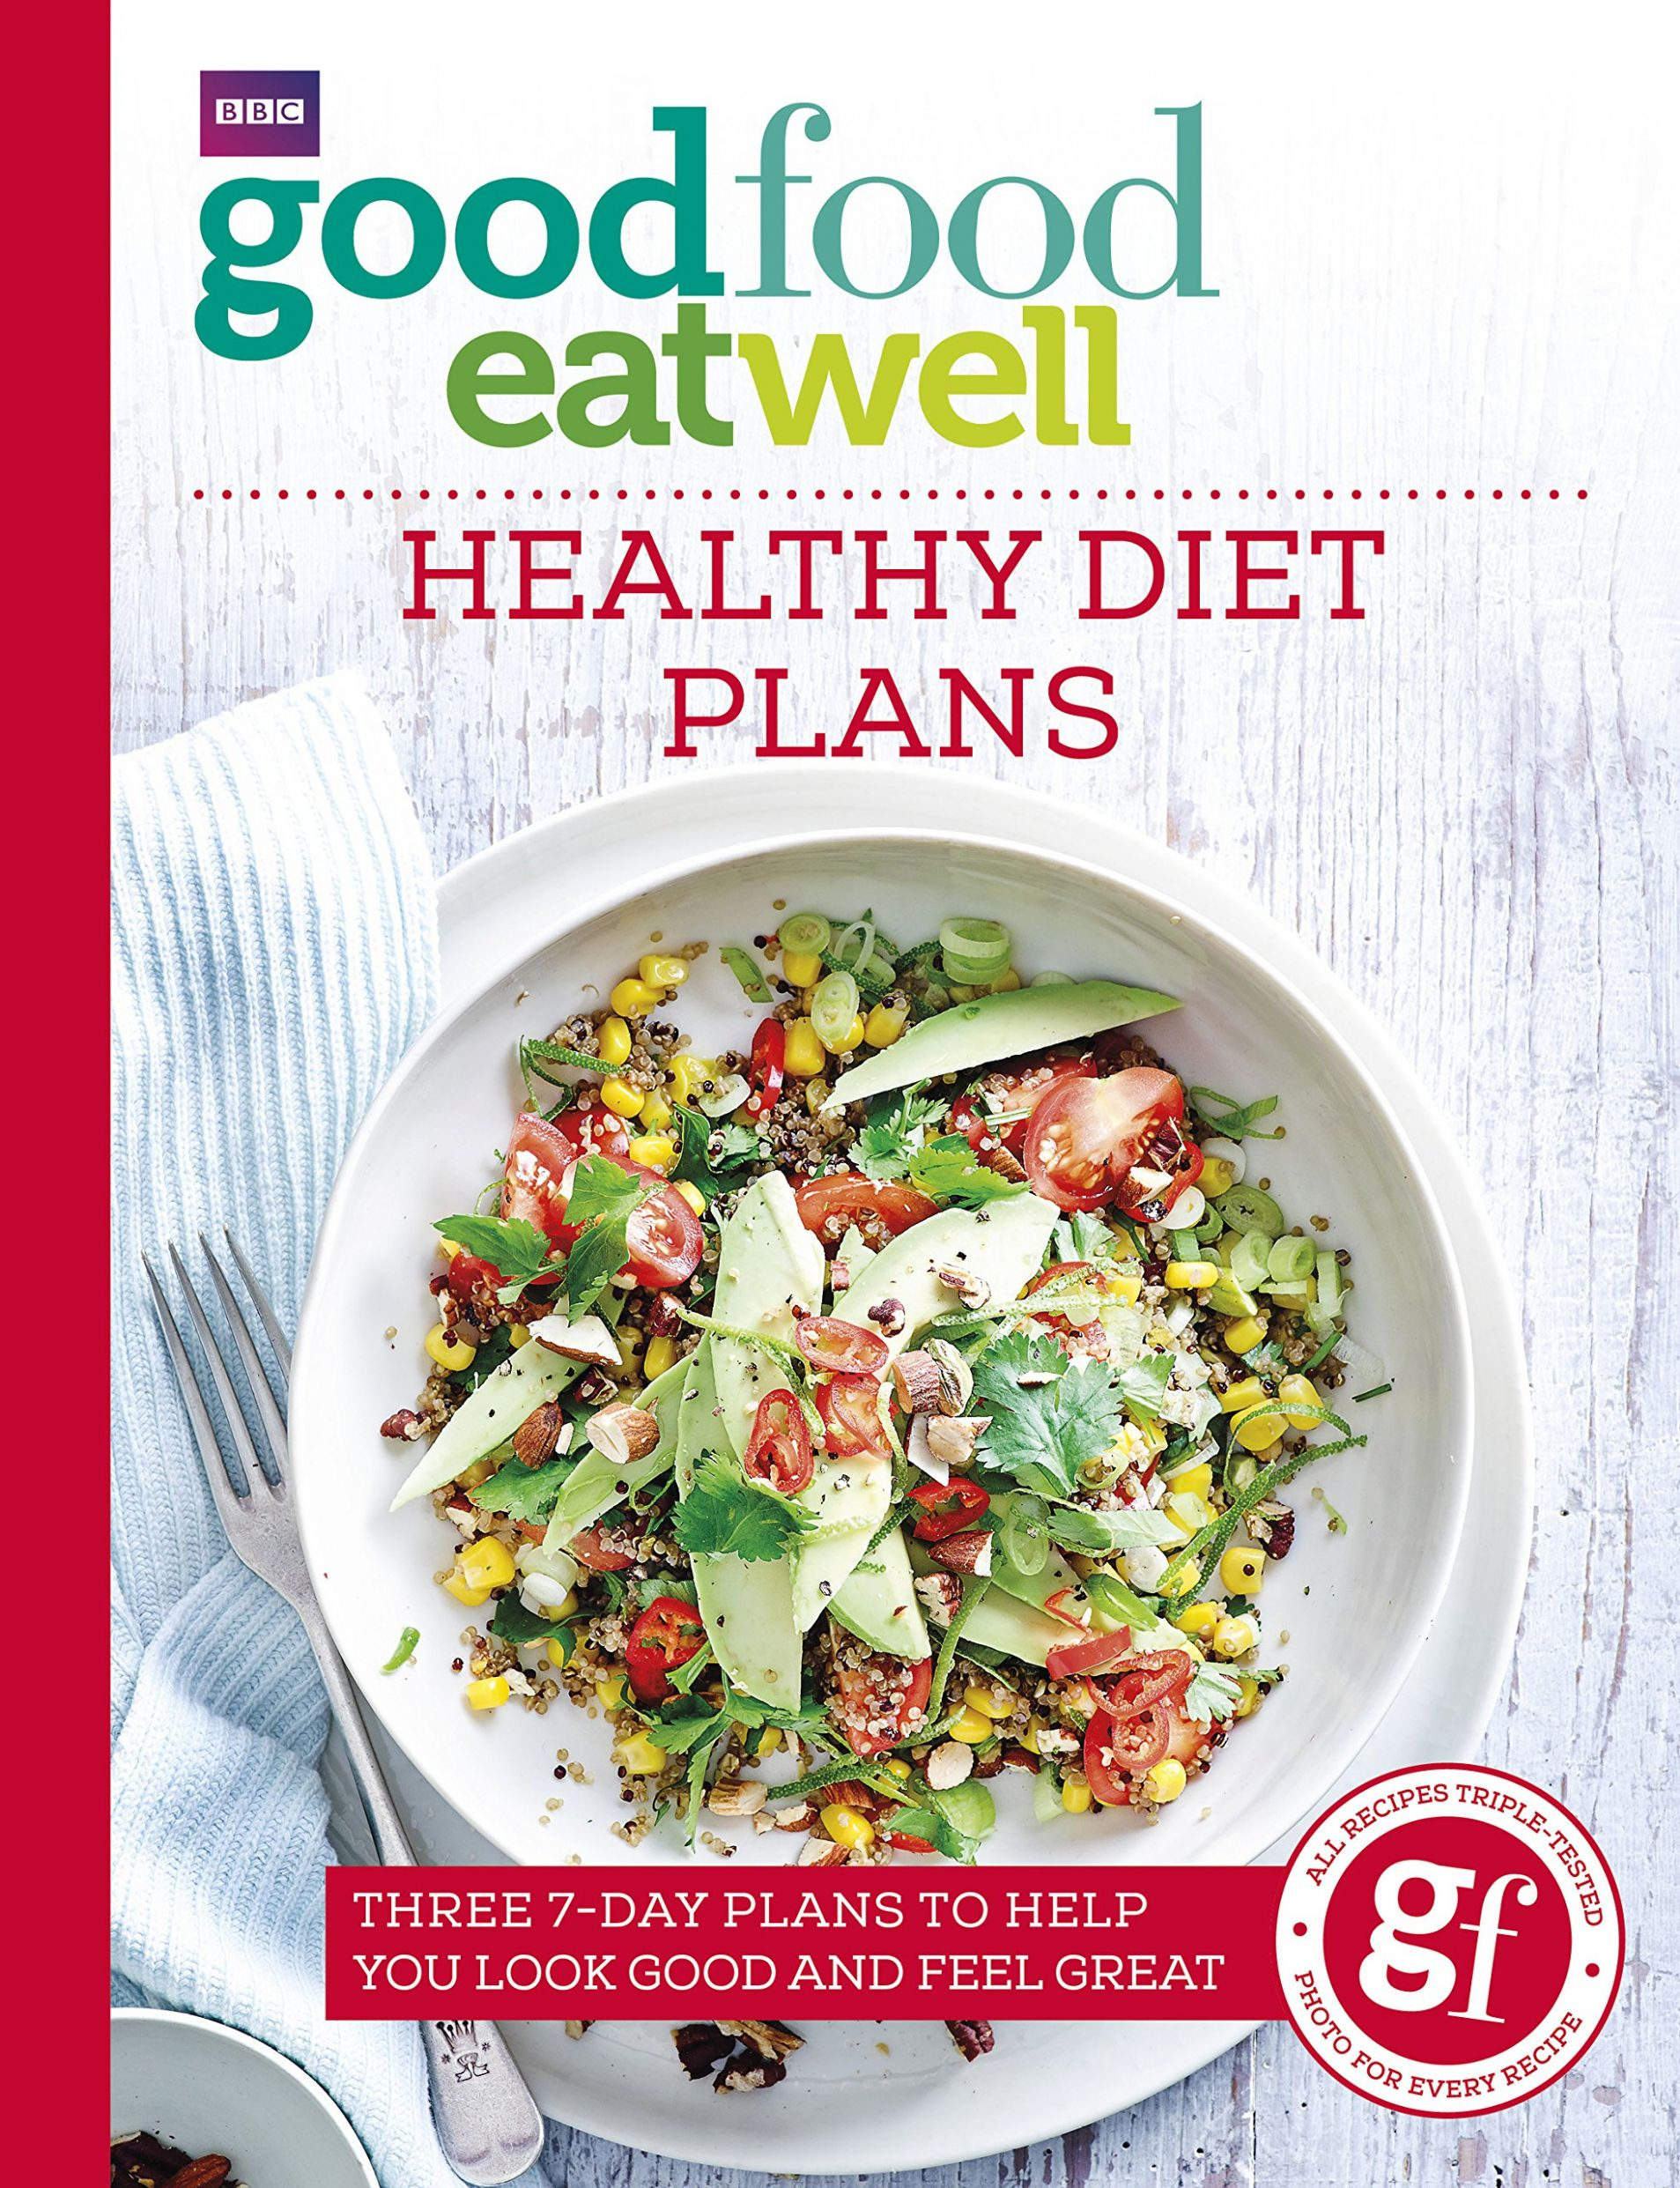 Good Food Eat Well: Healthy Diet Plans: Amazon.co.uk: Good Food ...